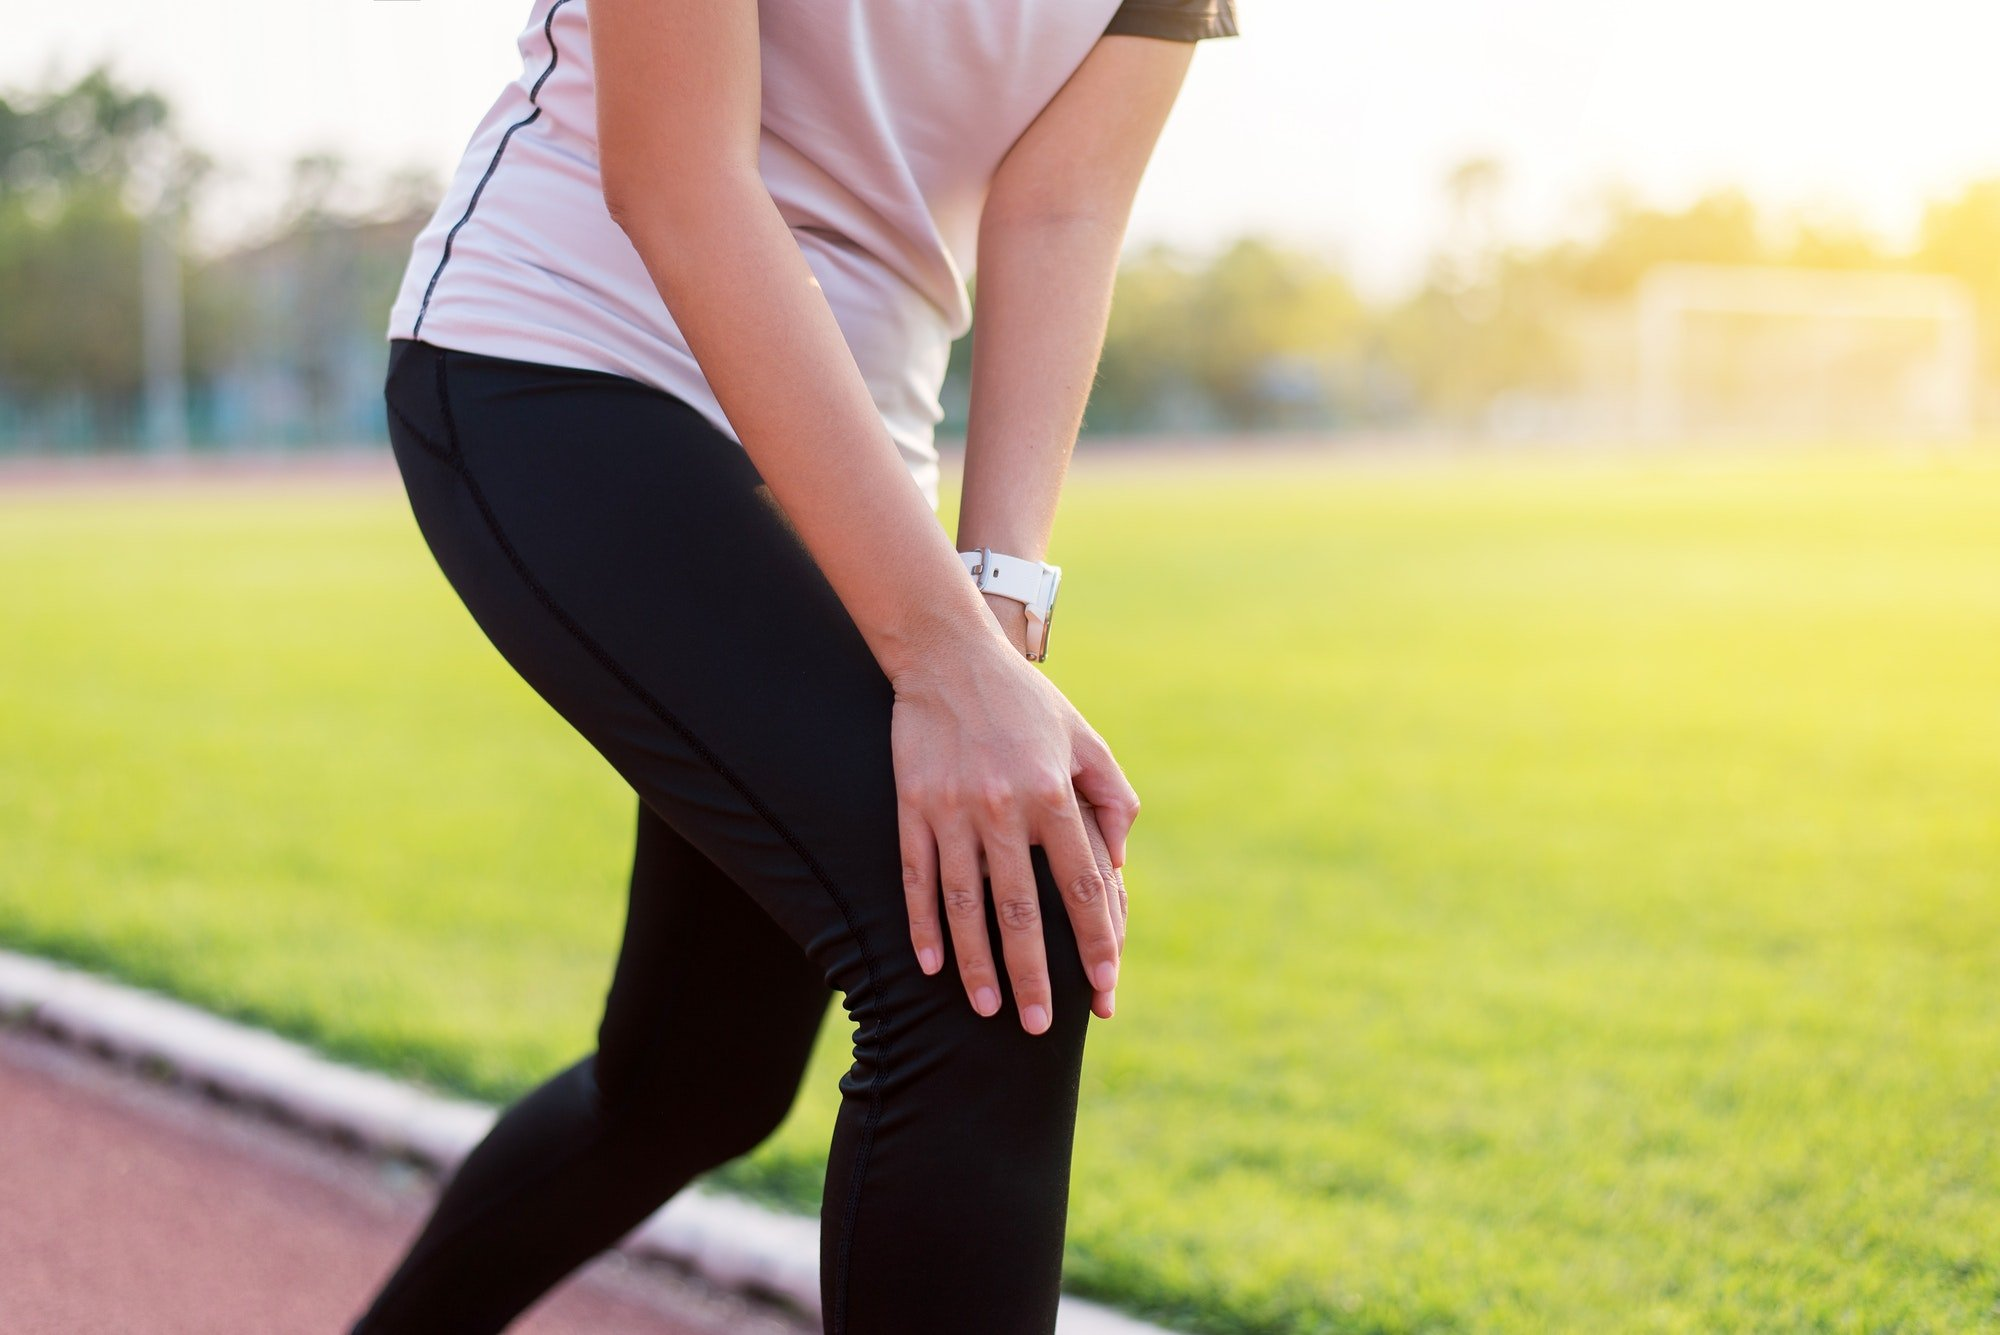 Beautiful women runner having a knee pain and injury after running